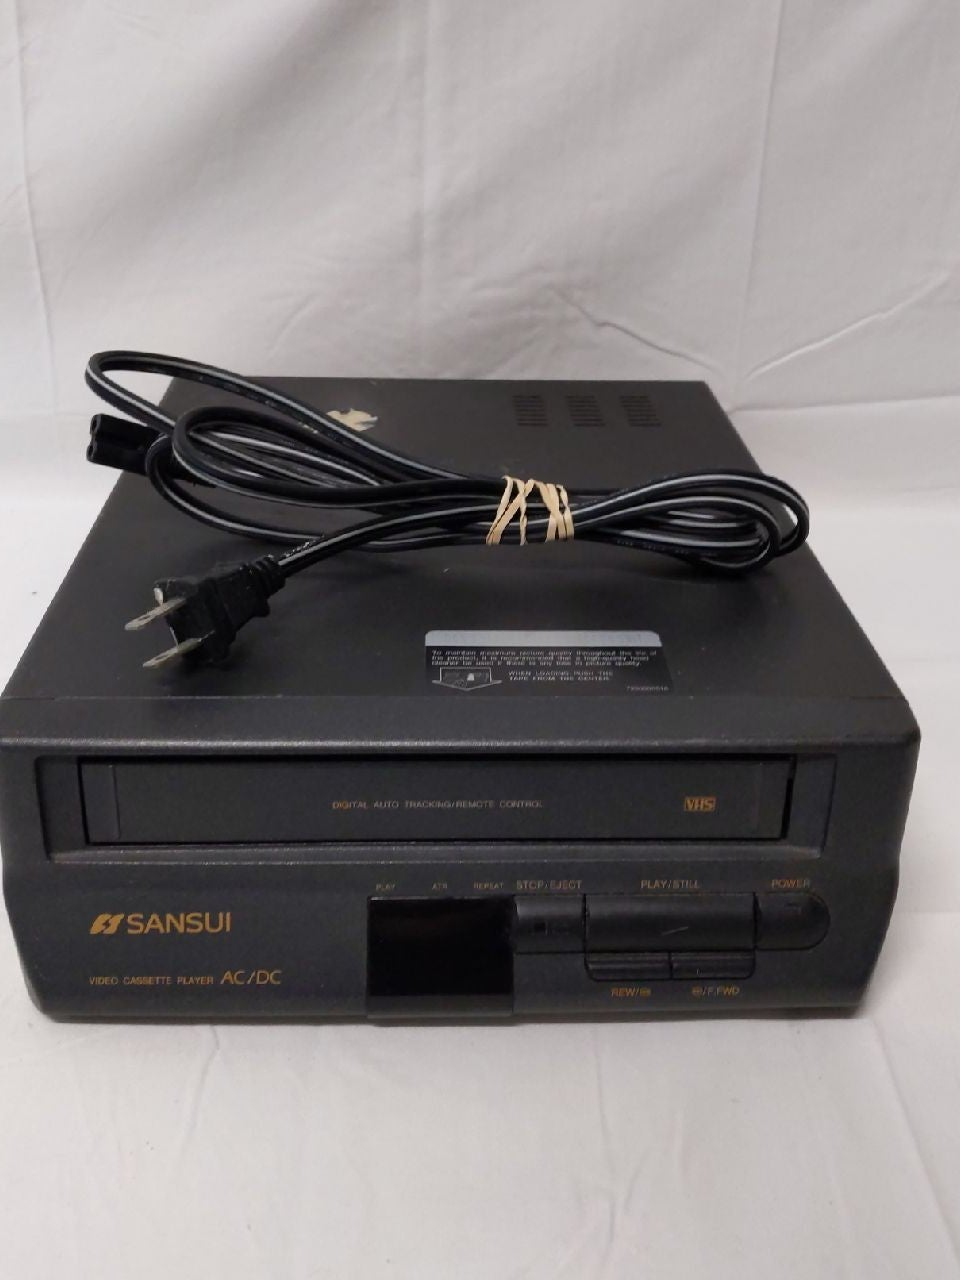 VCR Sansui VHS Tape Player Compact